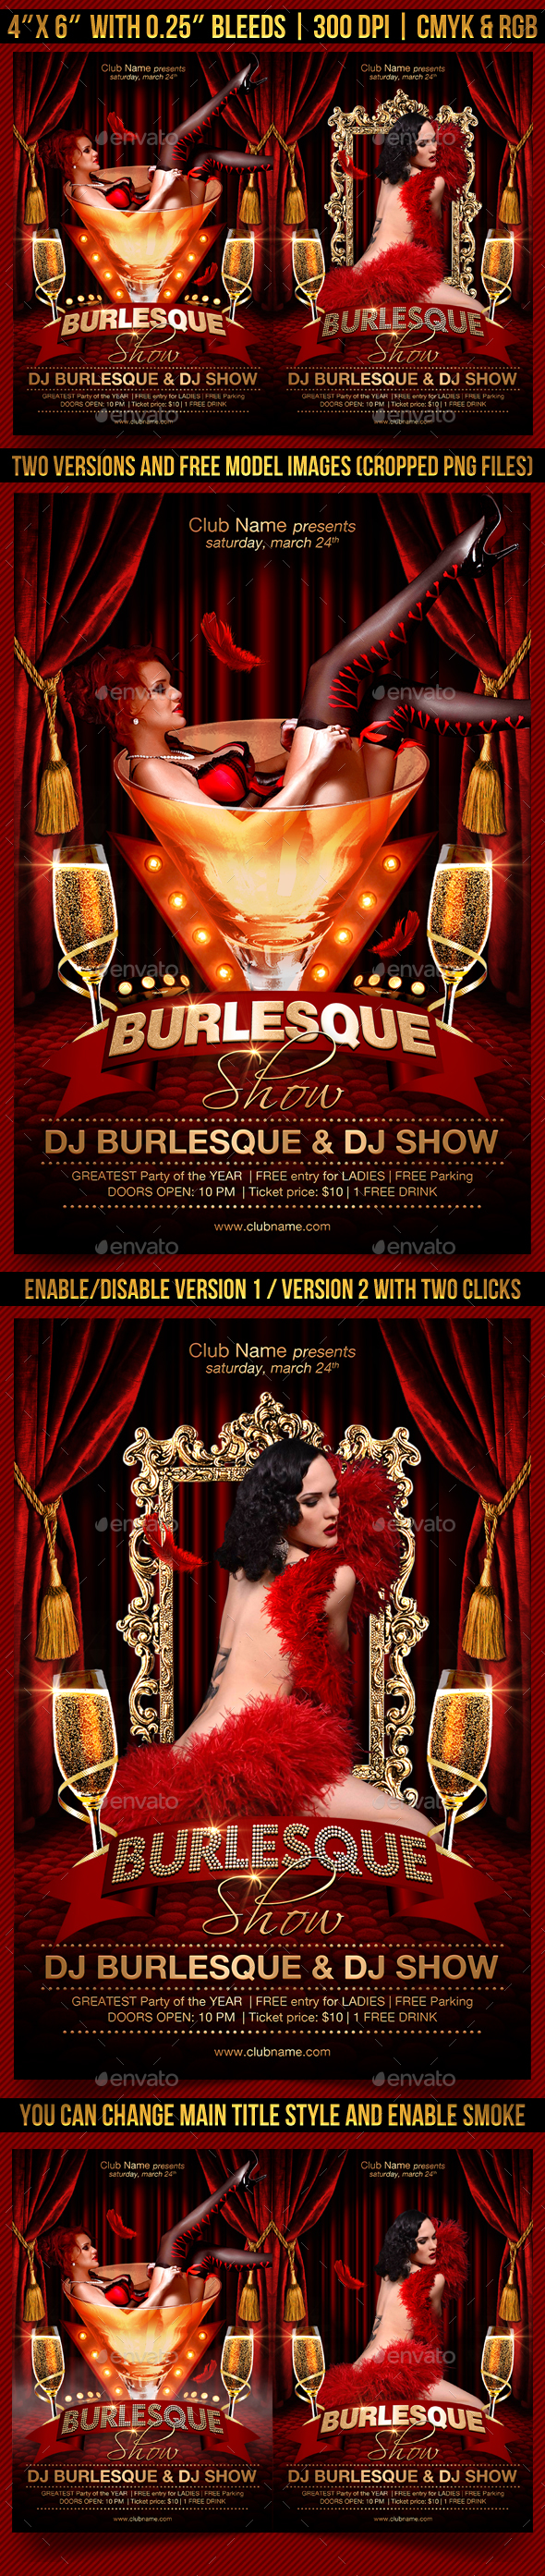 Burlesque Show Flyer Template - Clubs & Parties Events